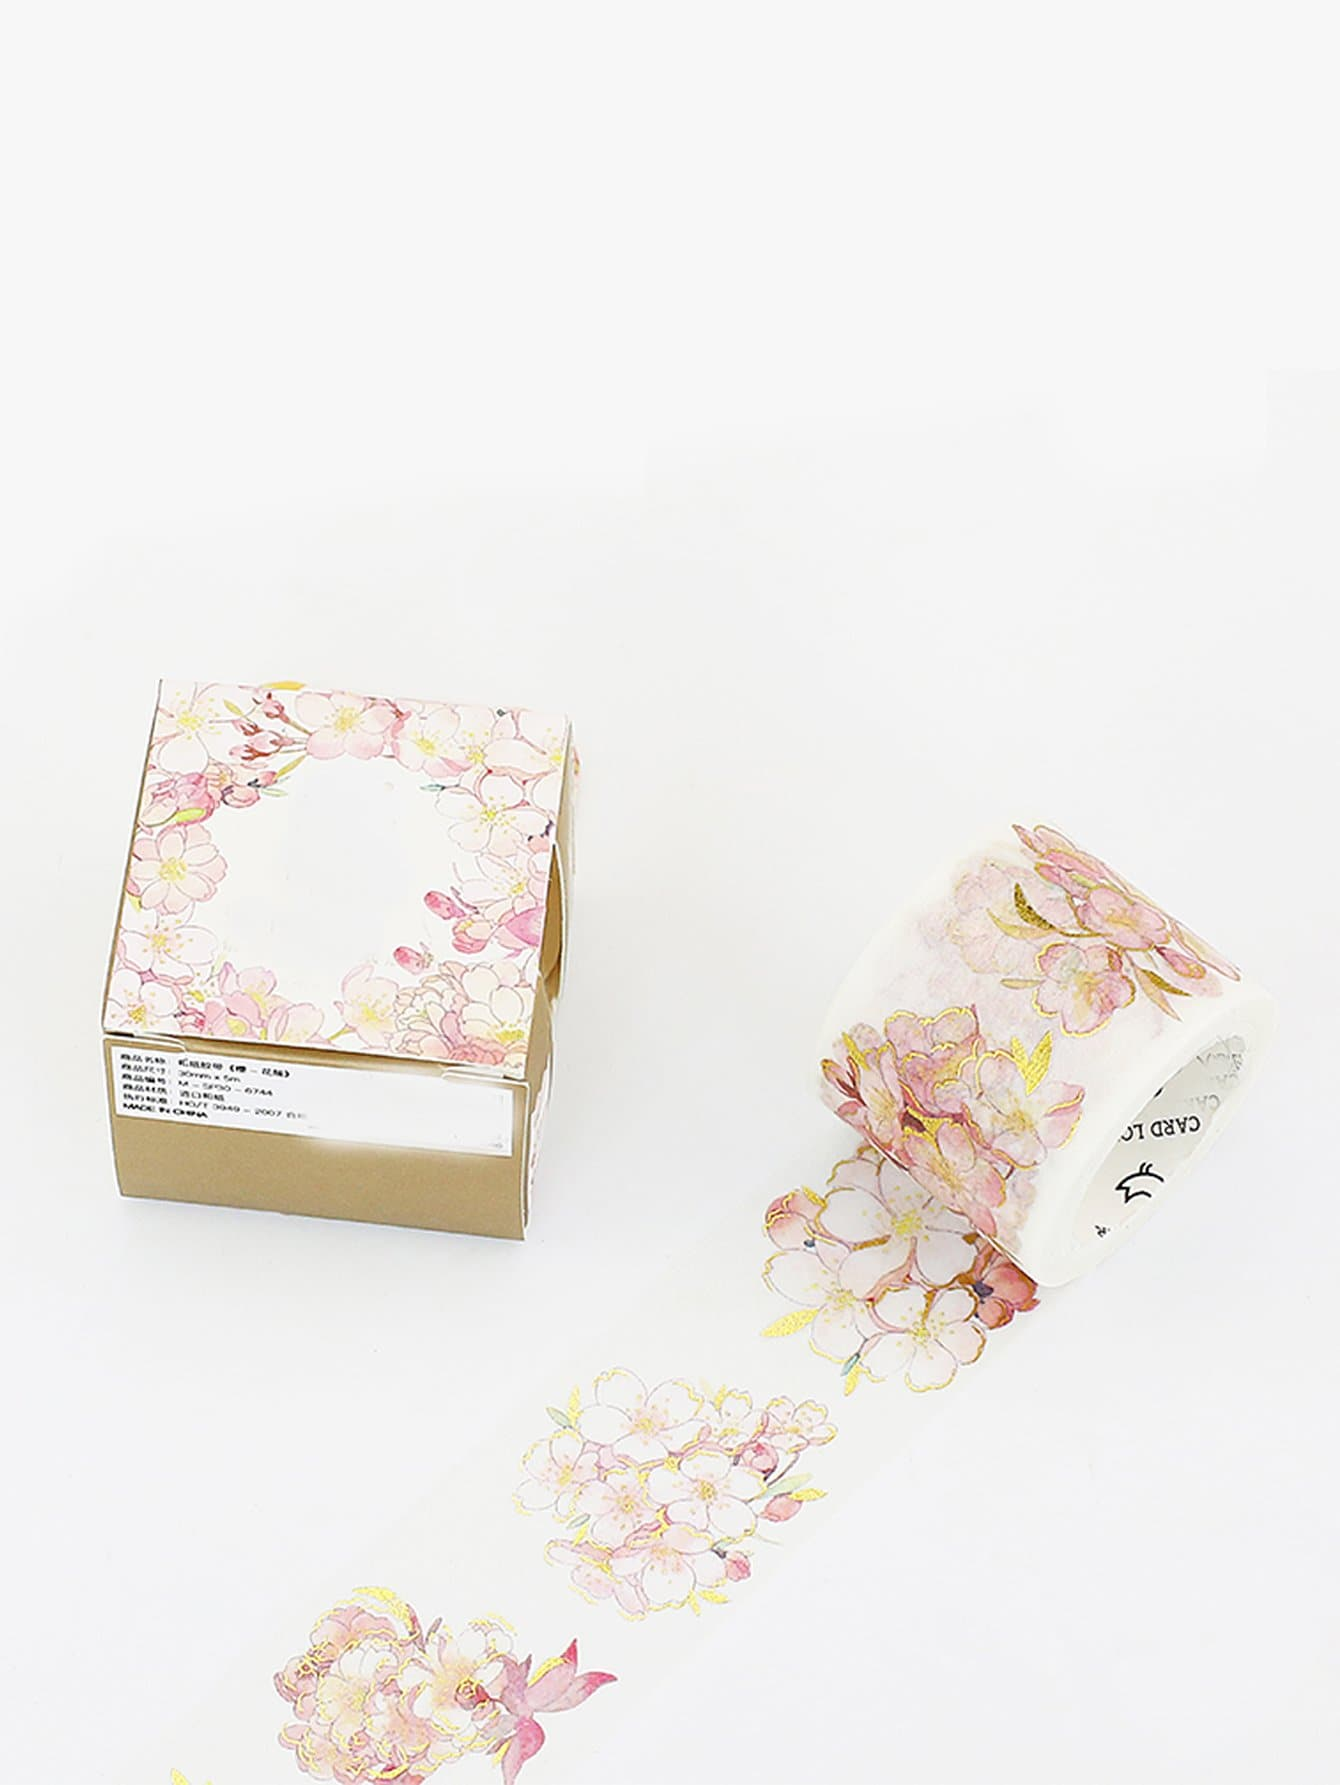 Flower Print Wide Masking Tape 1 5cm wide various mushroom collections washi tape diy scrapbooking sticker label masking tape school office supply